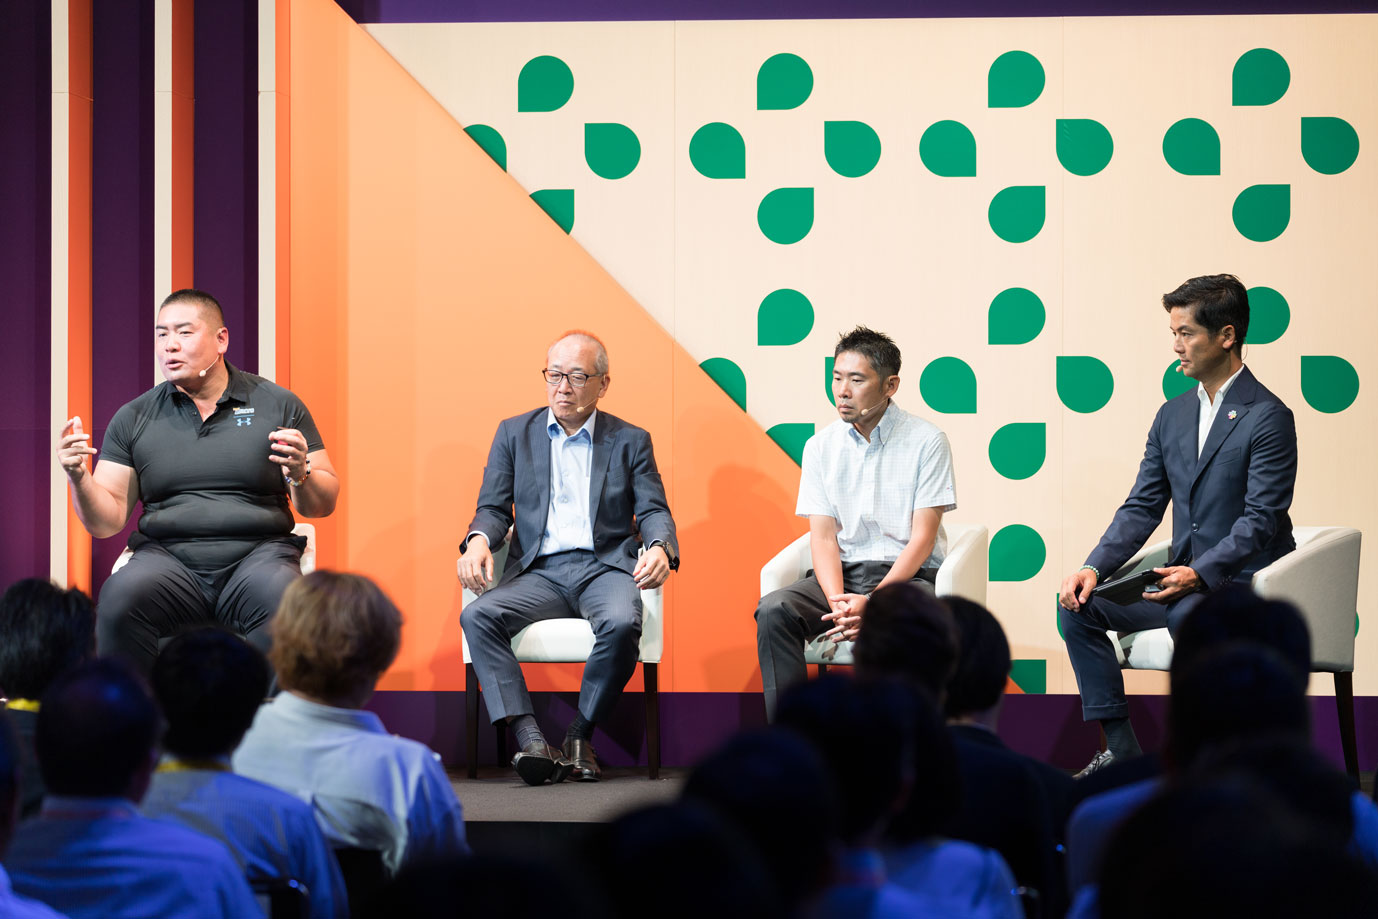 Speakers from companies in Japan share how they use Slack at the Frontiers Tokyo conference